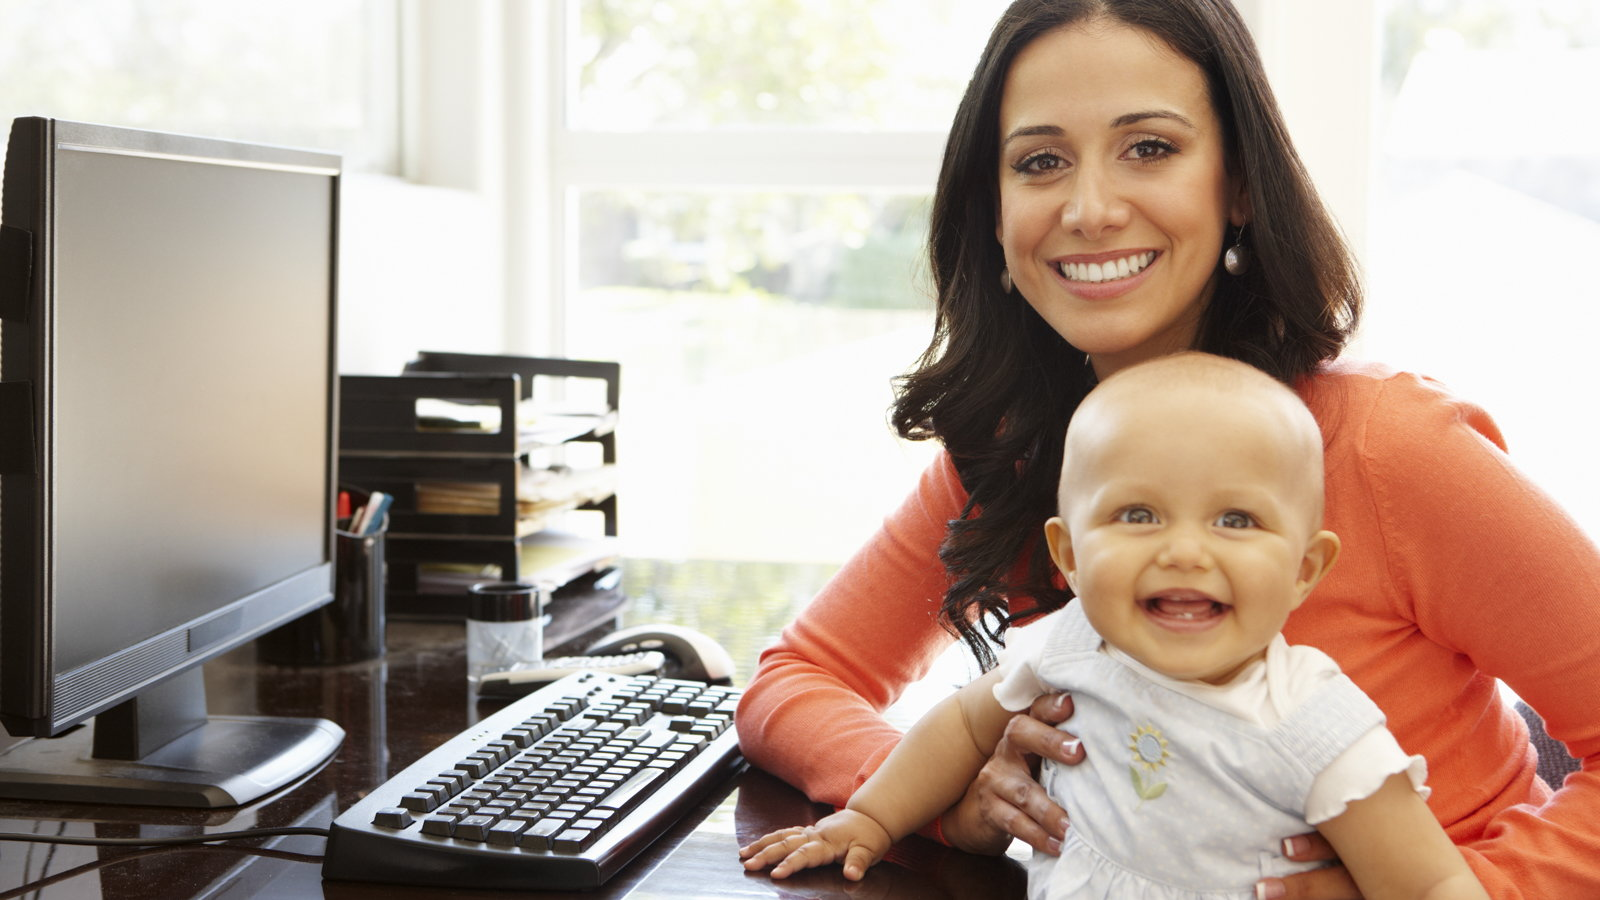 mom sitting at desk with baby